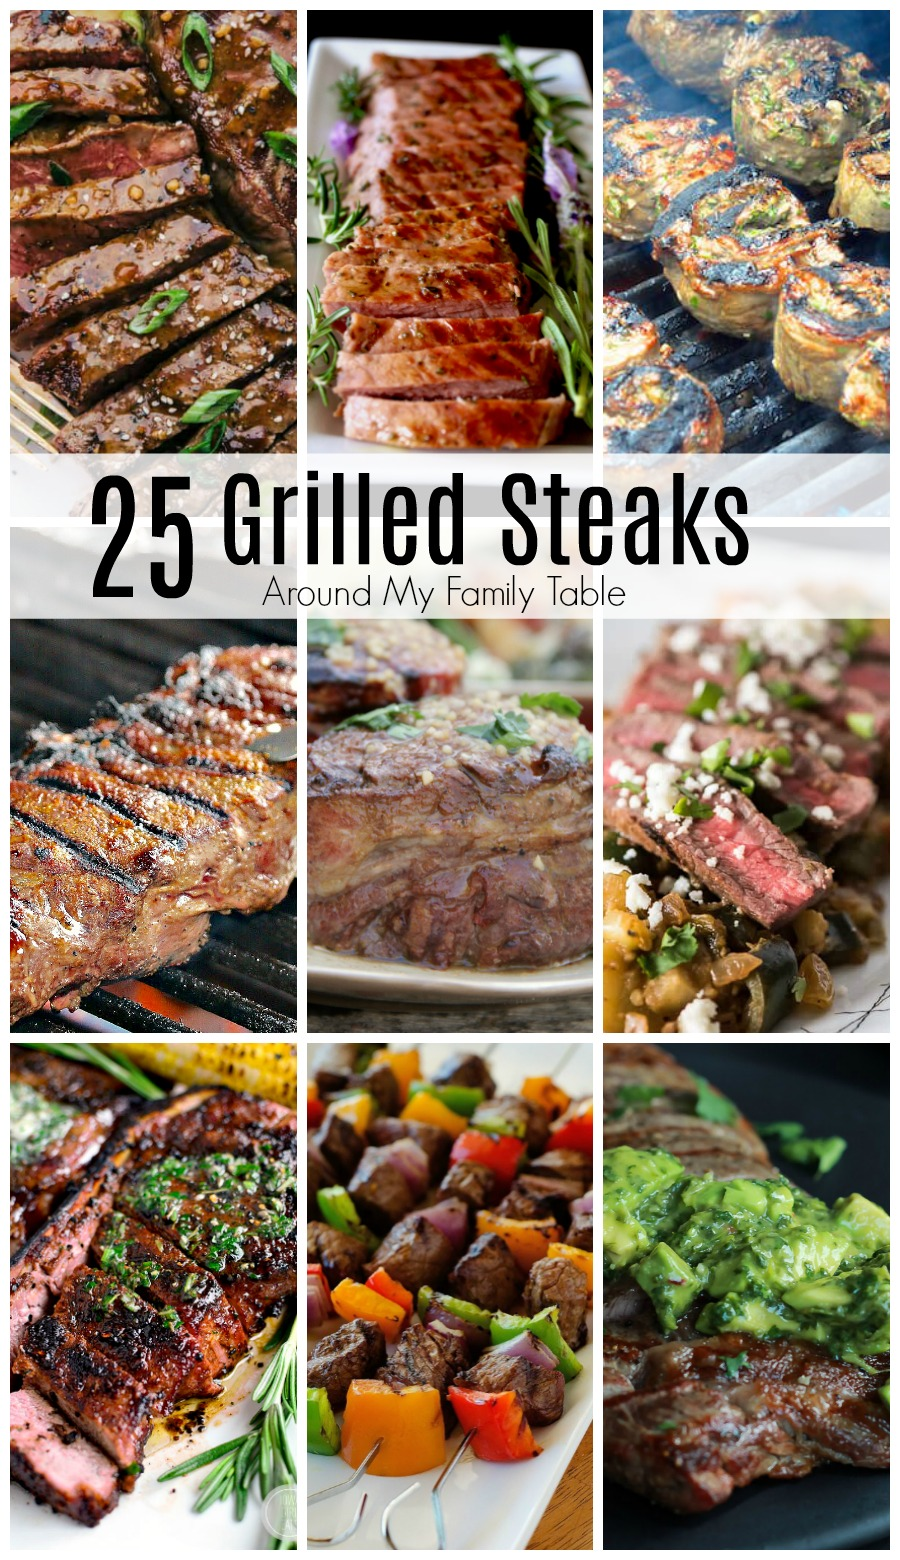 Fire up the grill!   Americans love beef, especially if it is a juicy, tender steak.  If grilled steak is on your menu this summer, these 25 Grilled Steak Recipes will really add some flavor to your backyard barbeque feast. #steak #grilling #summer